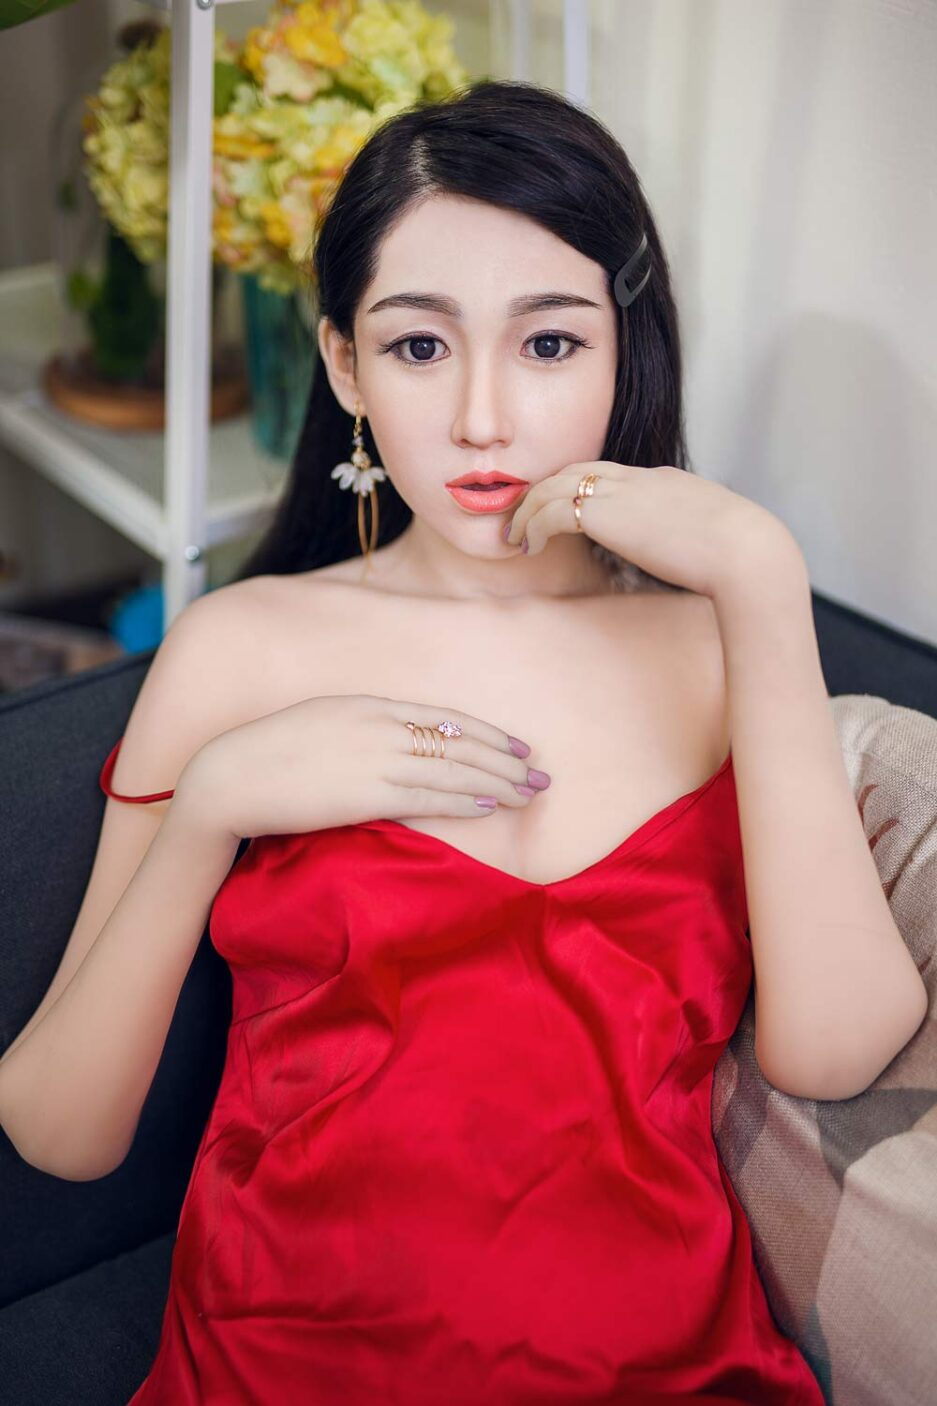 Silicone sex doll in red skirt